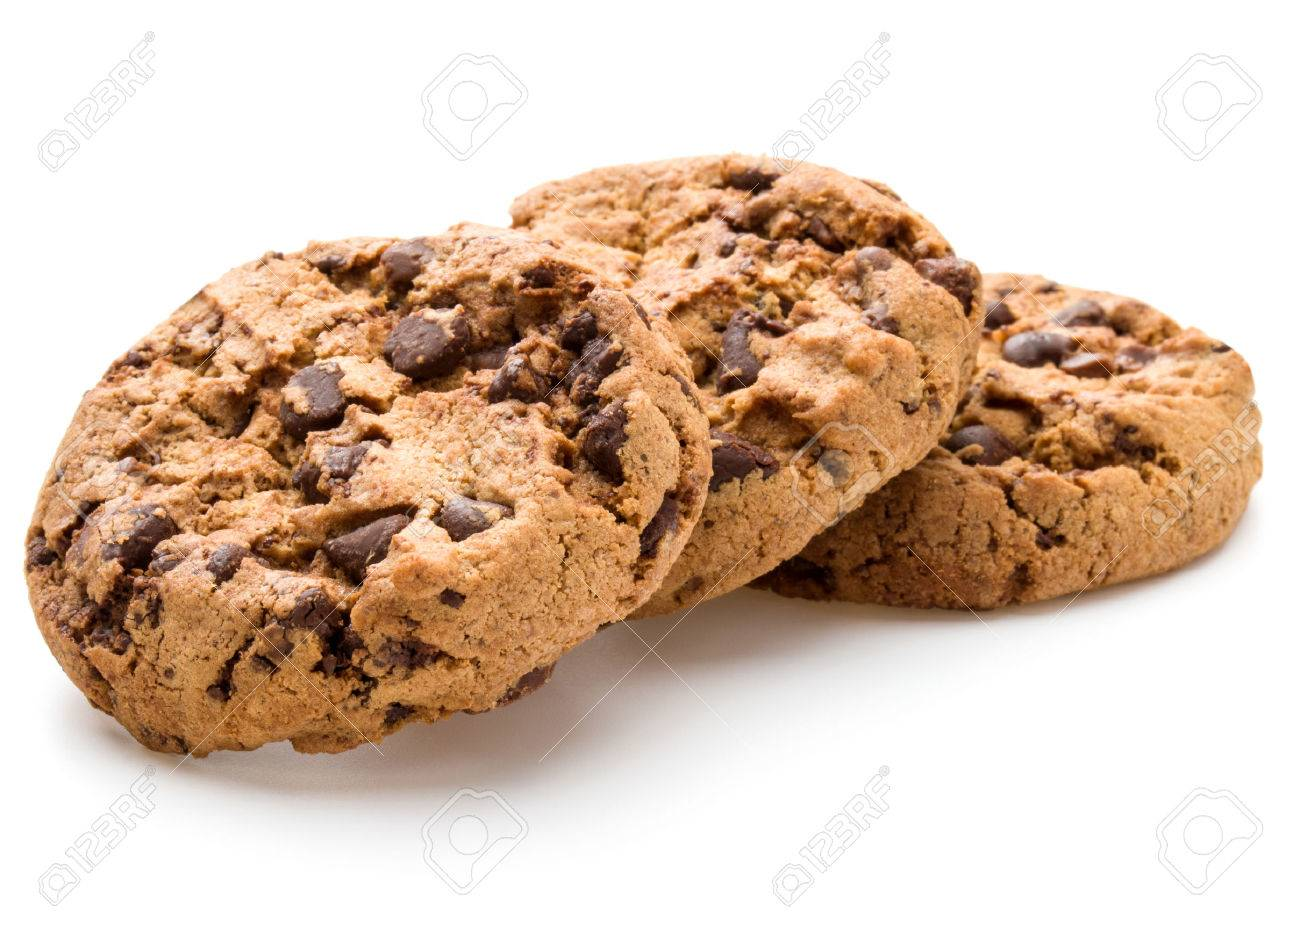 Chocolate cookies isolated on white background cutout - 37301150